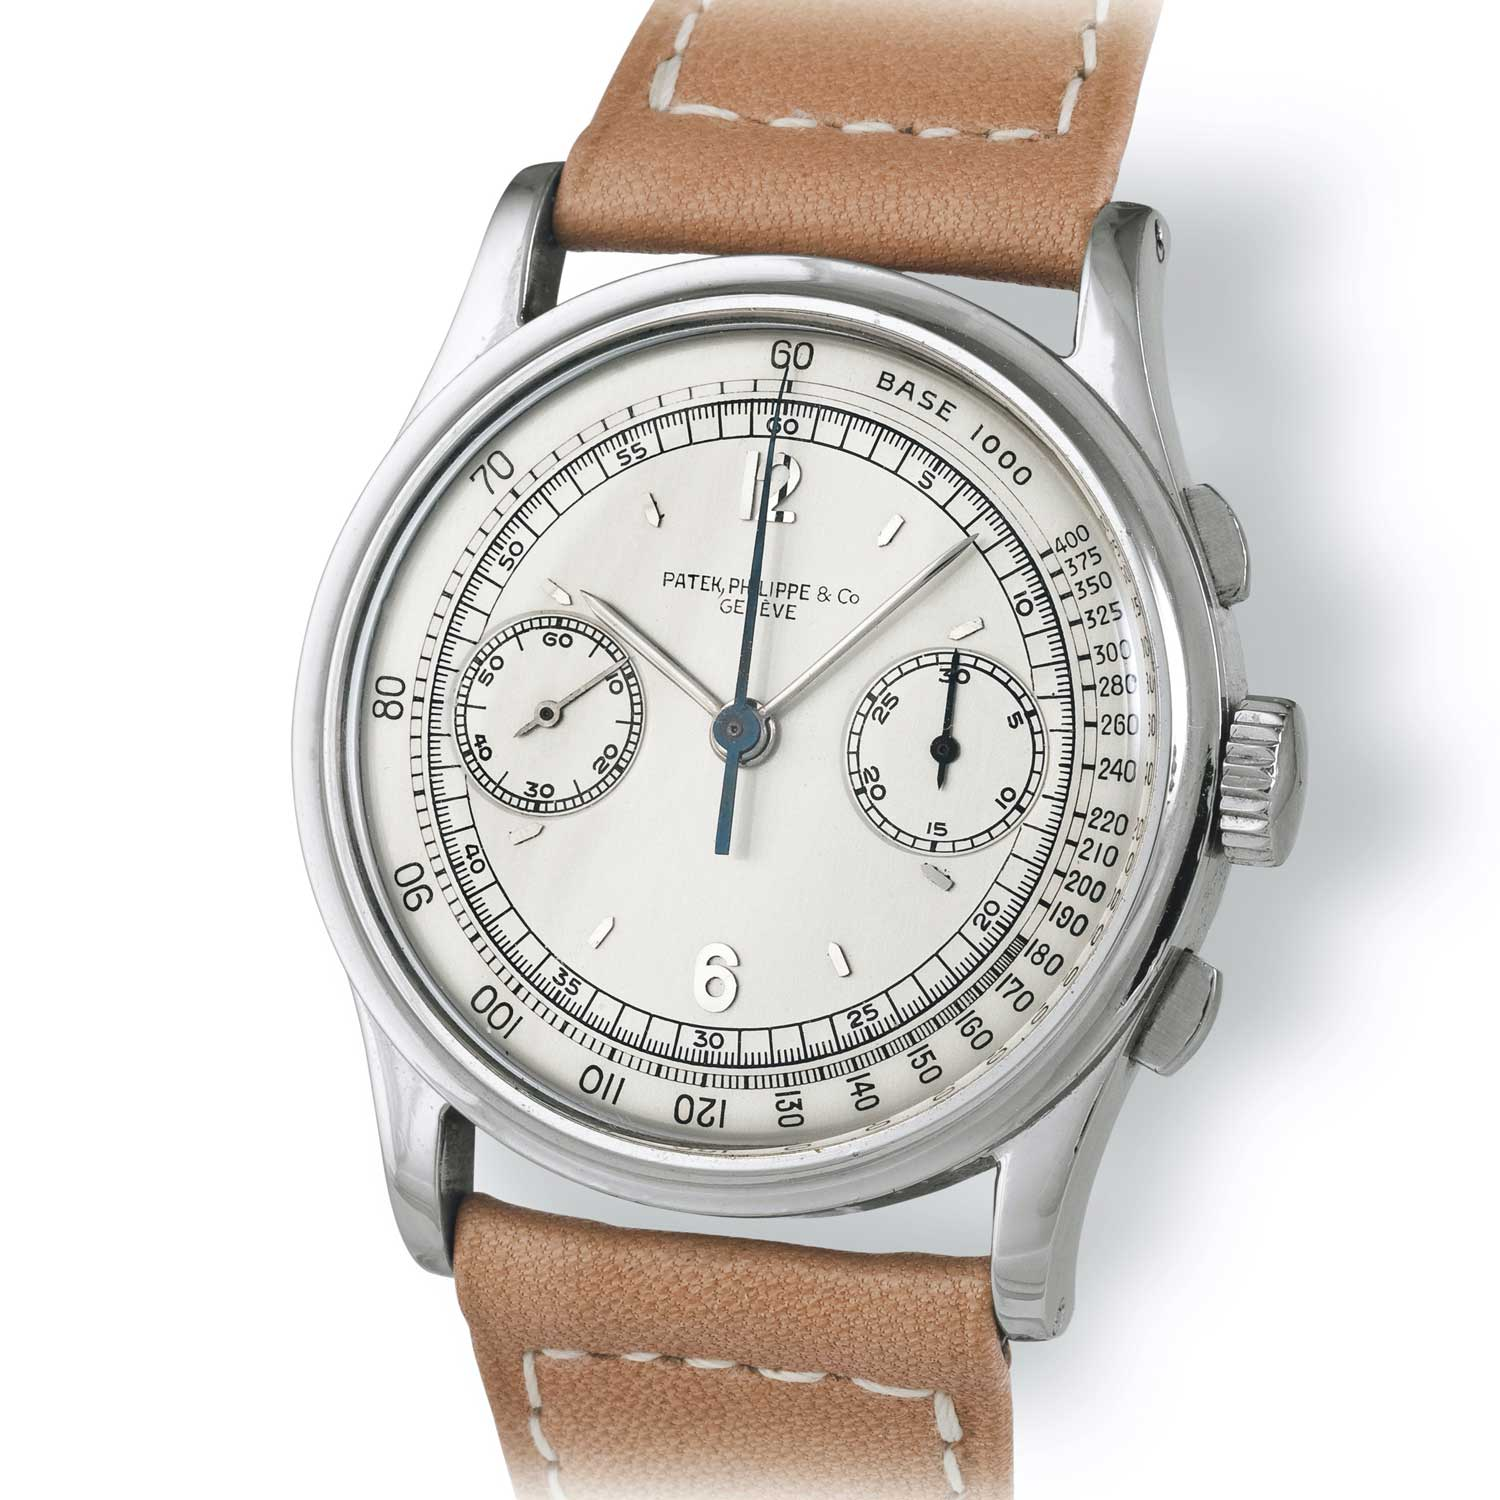 Patek Philippe ref. 530 steel chronograph with Arabic numerals and pointed baton markers (Image: John Goldberger)